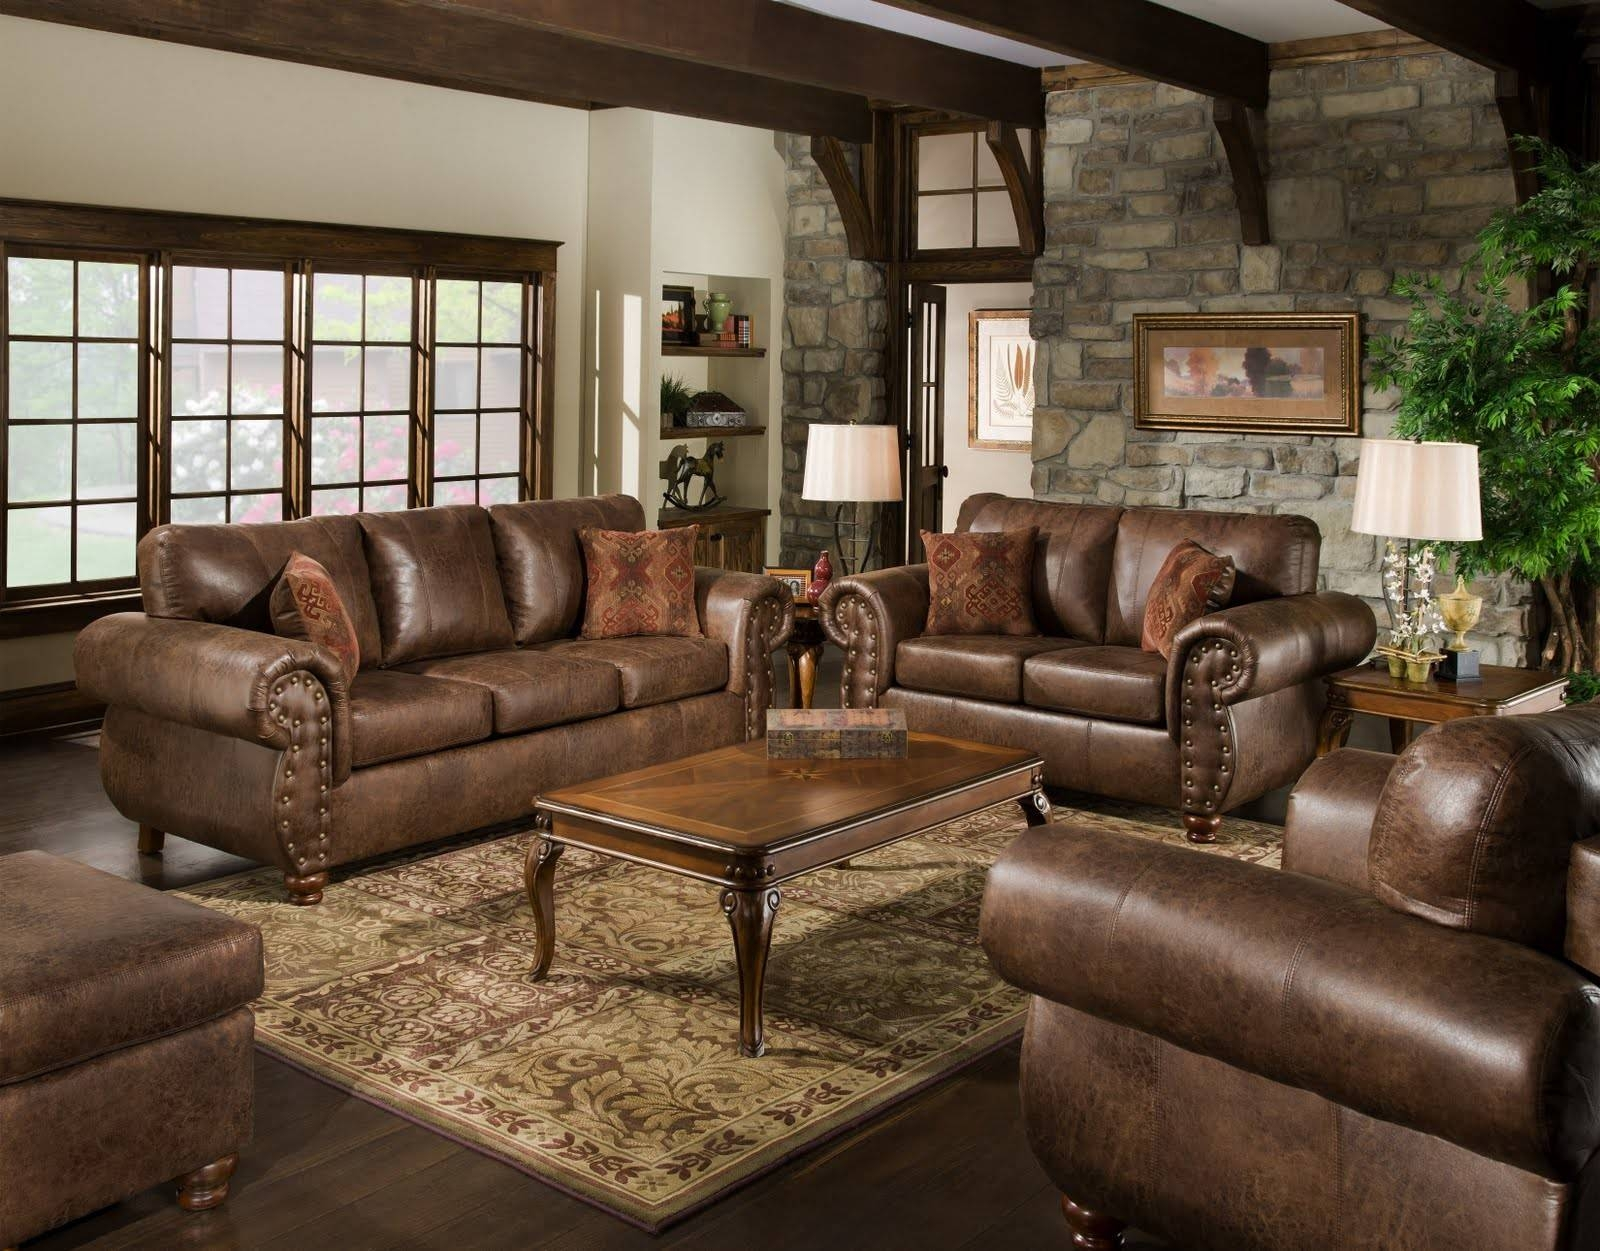 Traditional Indian Living Room Designs Leathe Armchair Brown Wall throughout Indian Coffee Tables (Image 30 of 30)